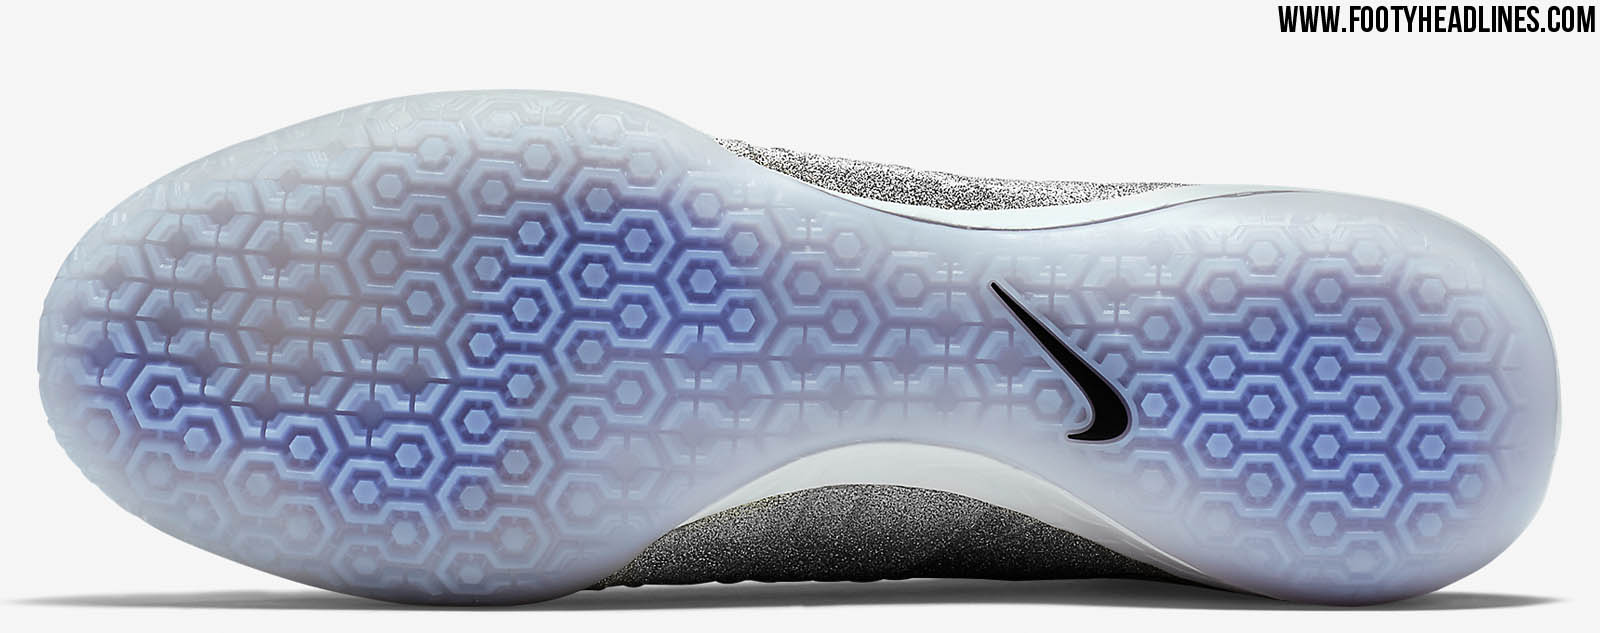 efc185e92 ... ebay the nike mercurial x proximo se ic cr7 boot is available as  limited edition at